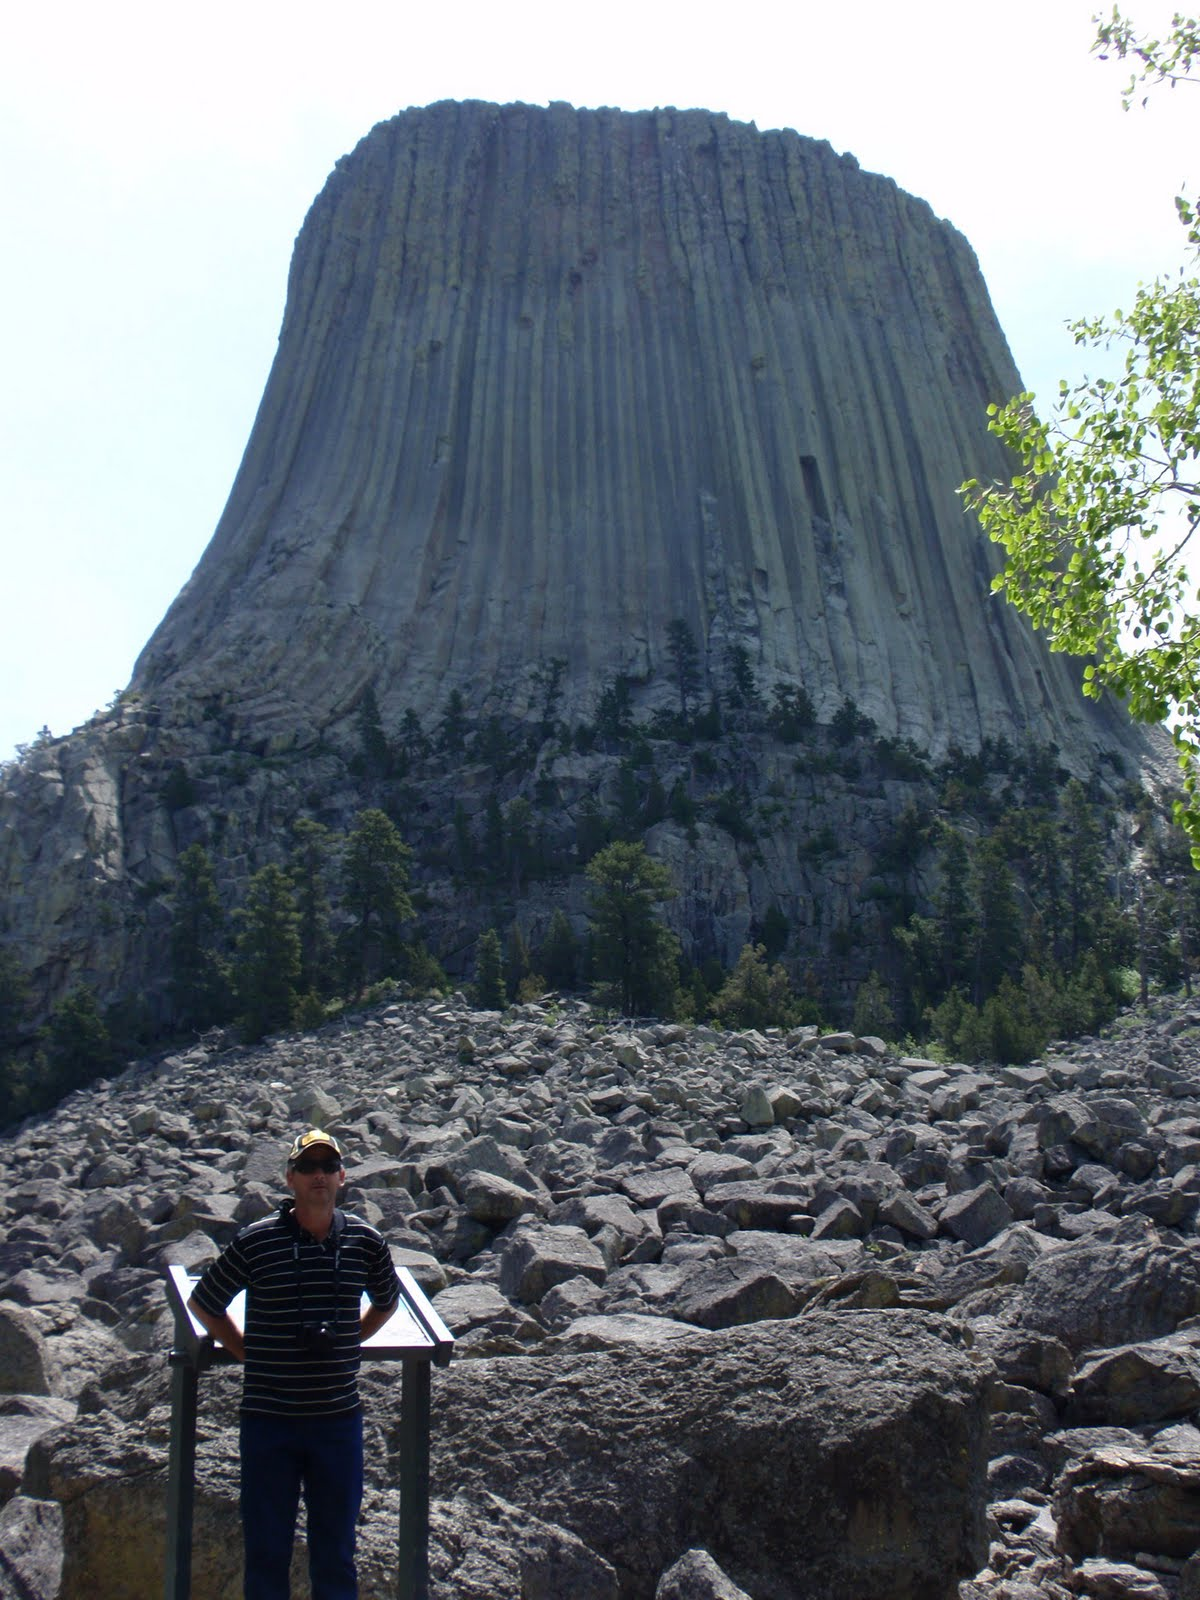 Dave Amp Shell S Travels Devils Tower Wyoming Amp Deadwood